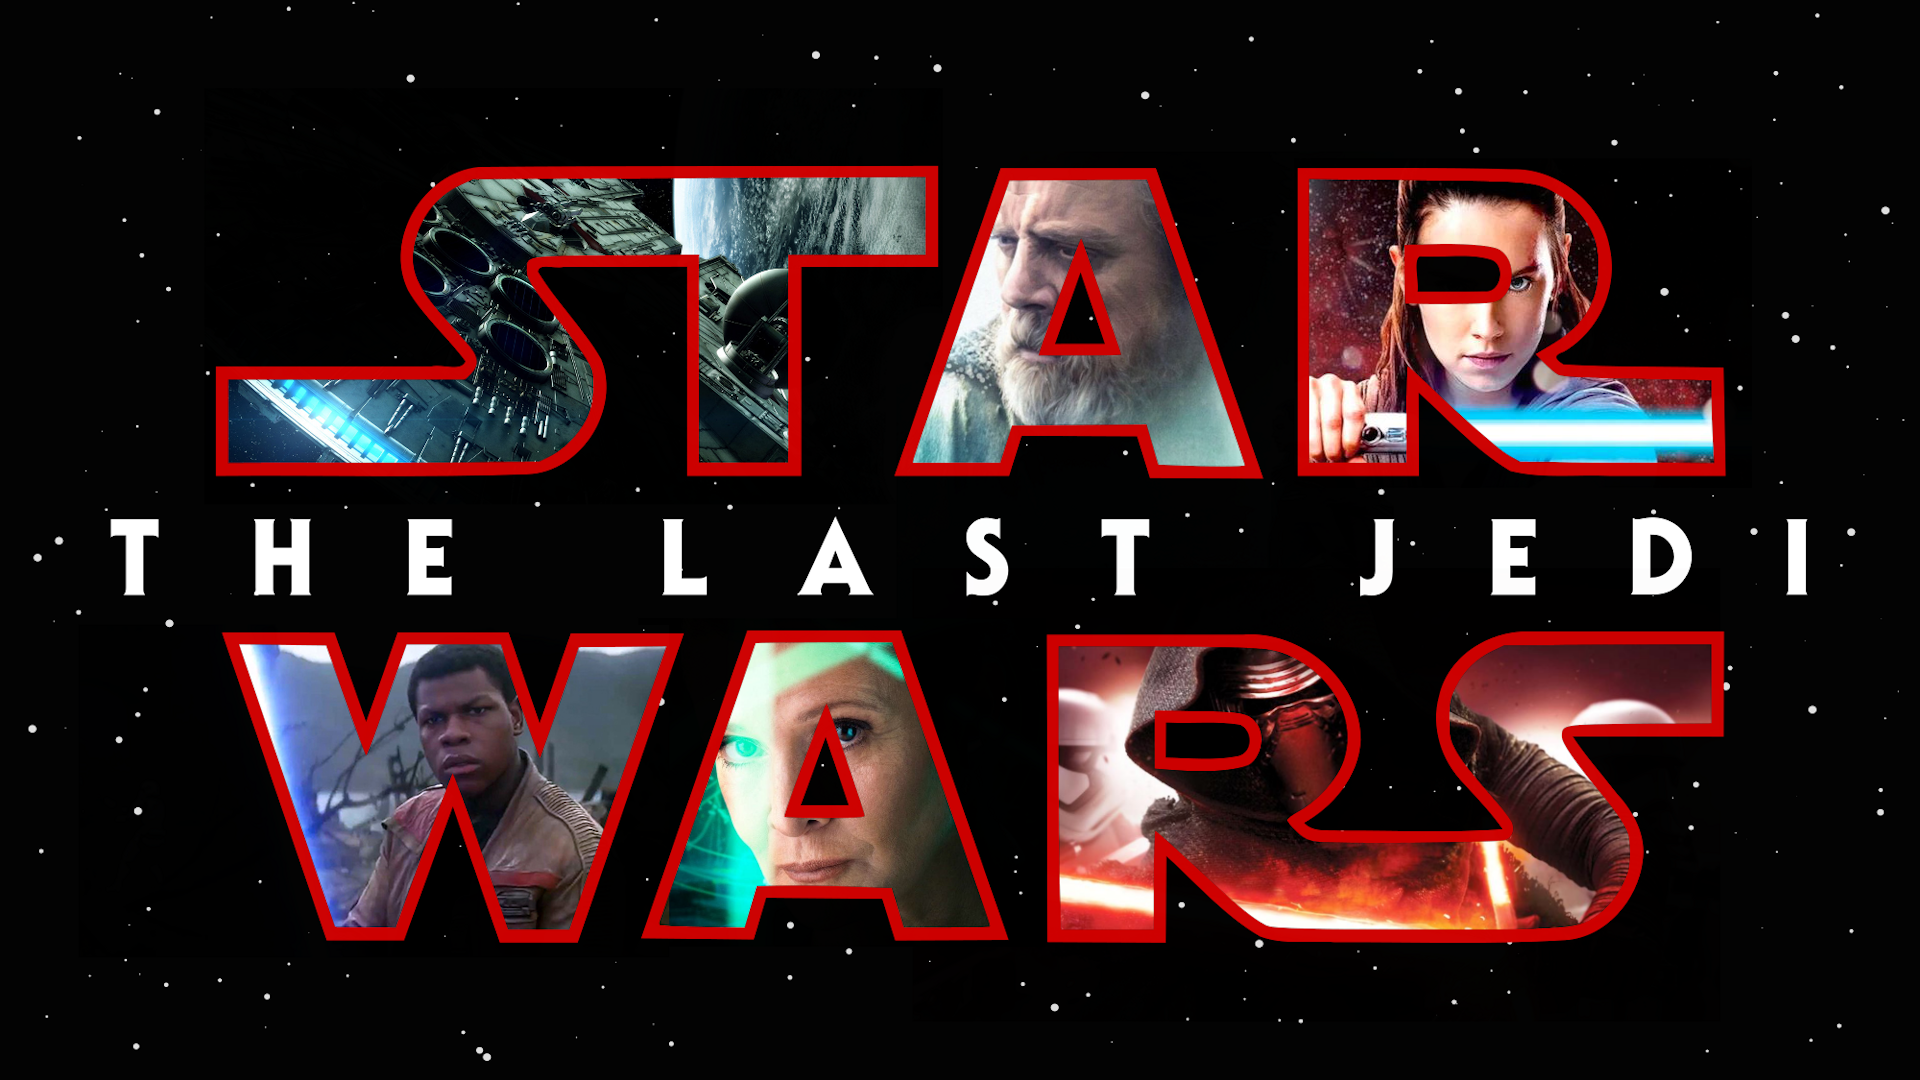 Start Wars The Last Jedi HD Wallpaper